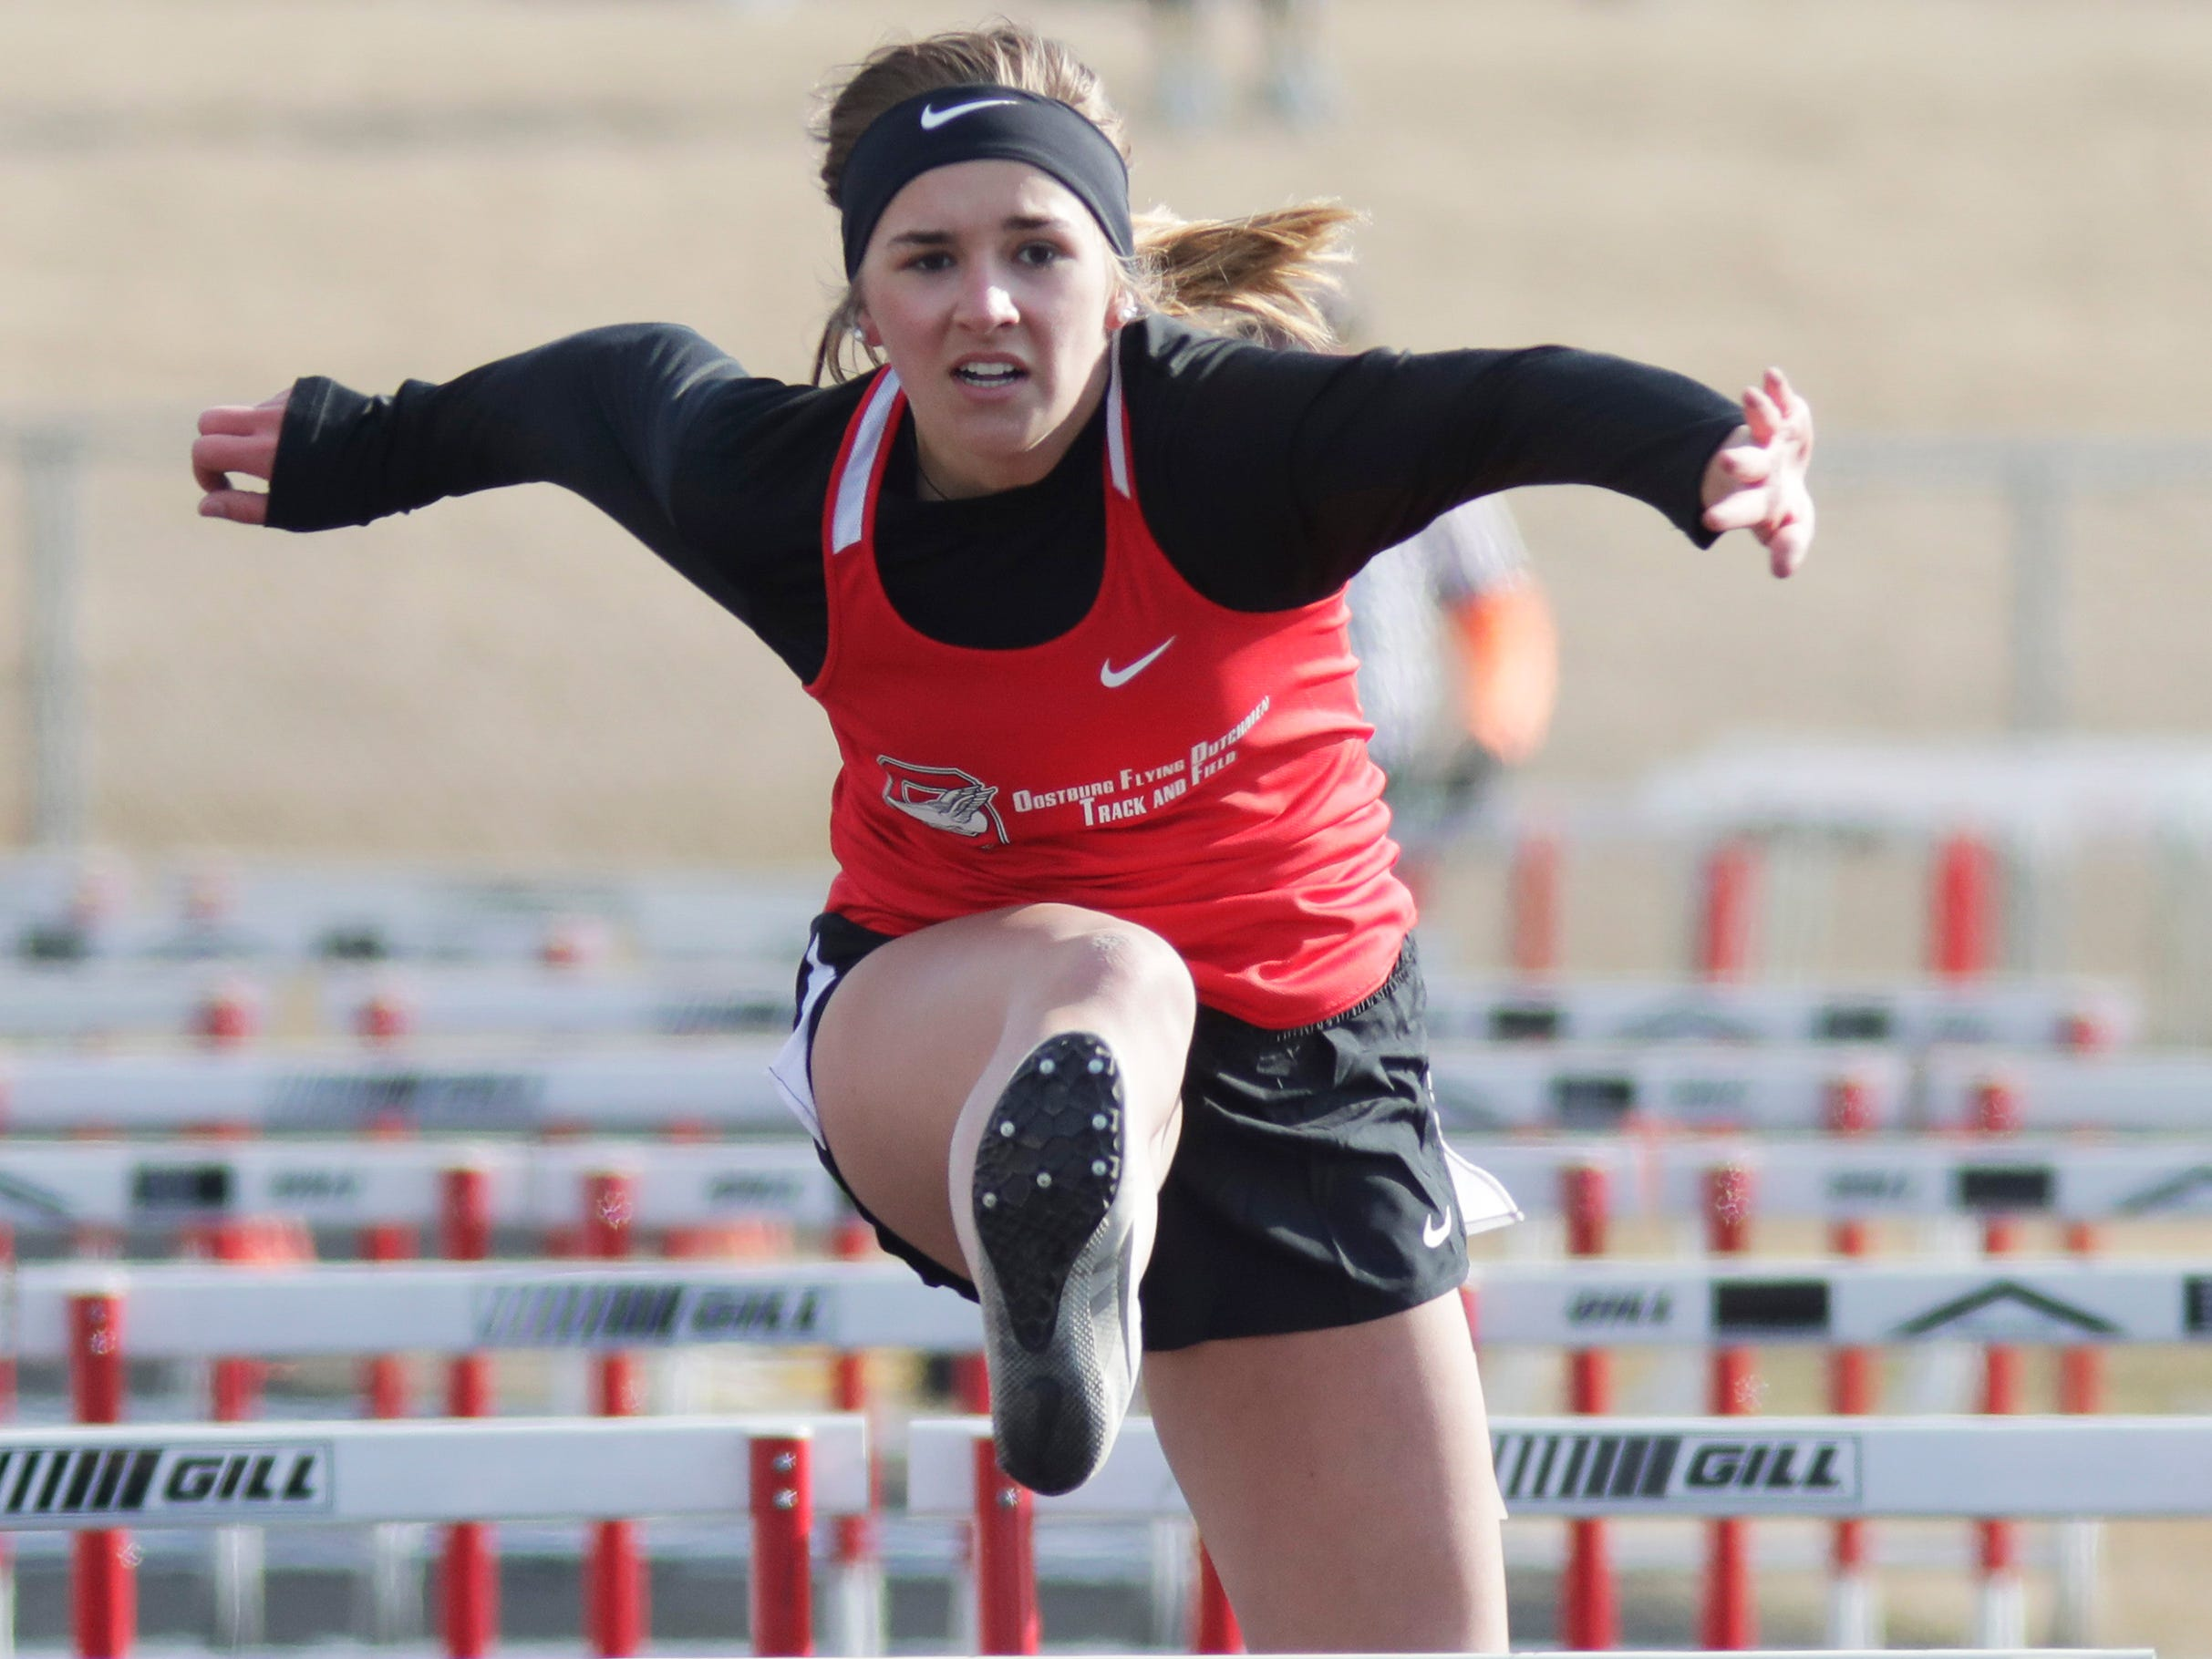 Oostburg's Hailey Gartman clears a high hurdle during the Flying Dutchmen Invite, Friday, April 5, 2019, in Oostburg, Wis.